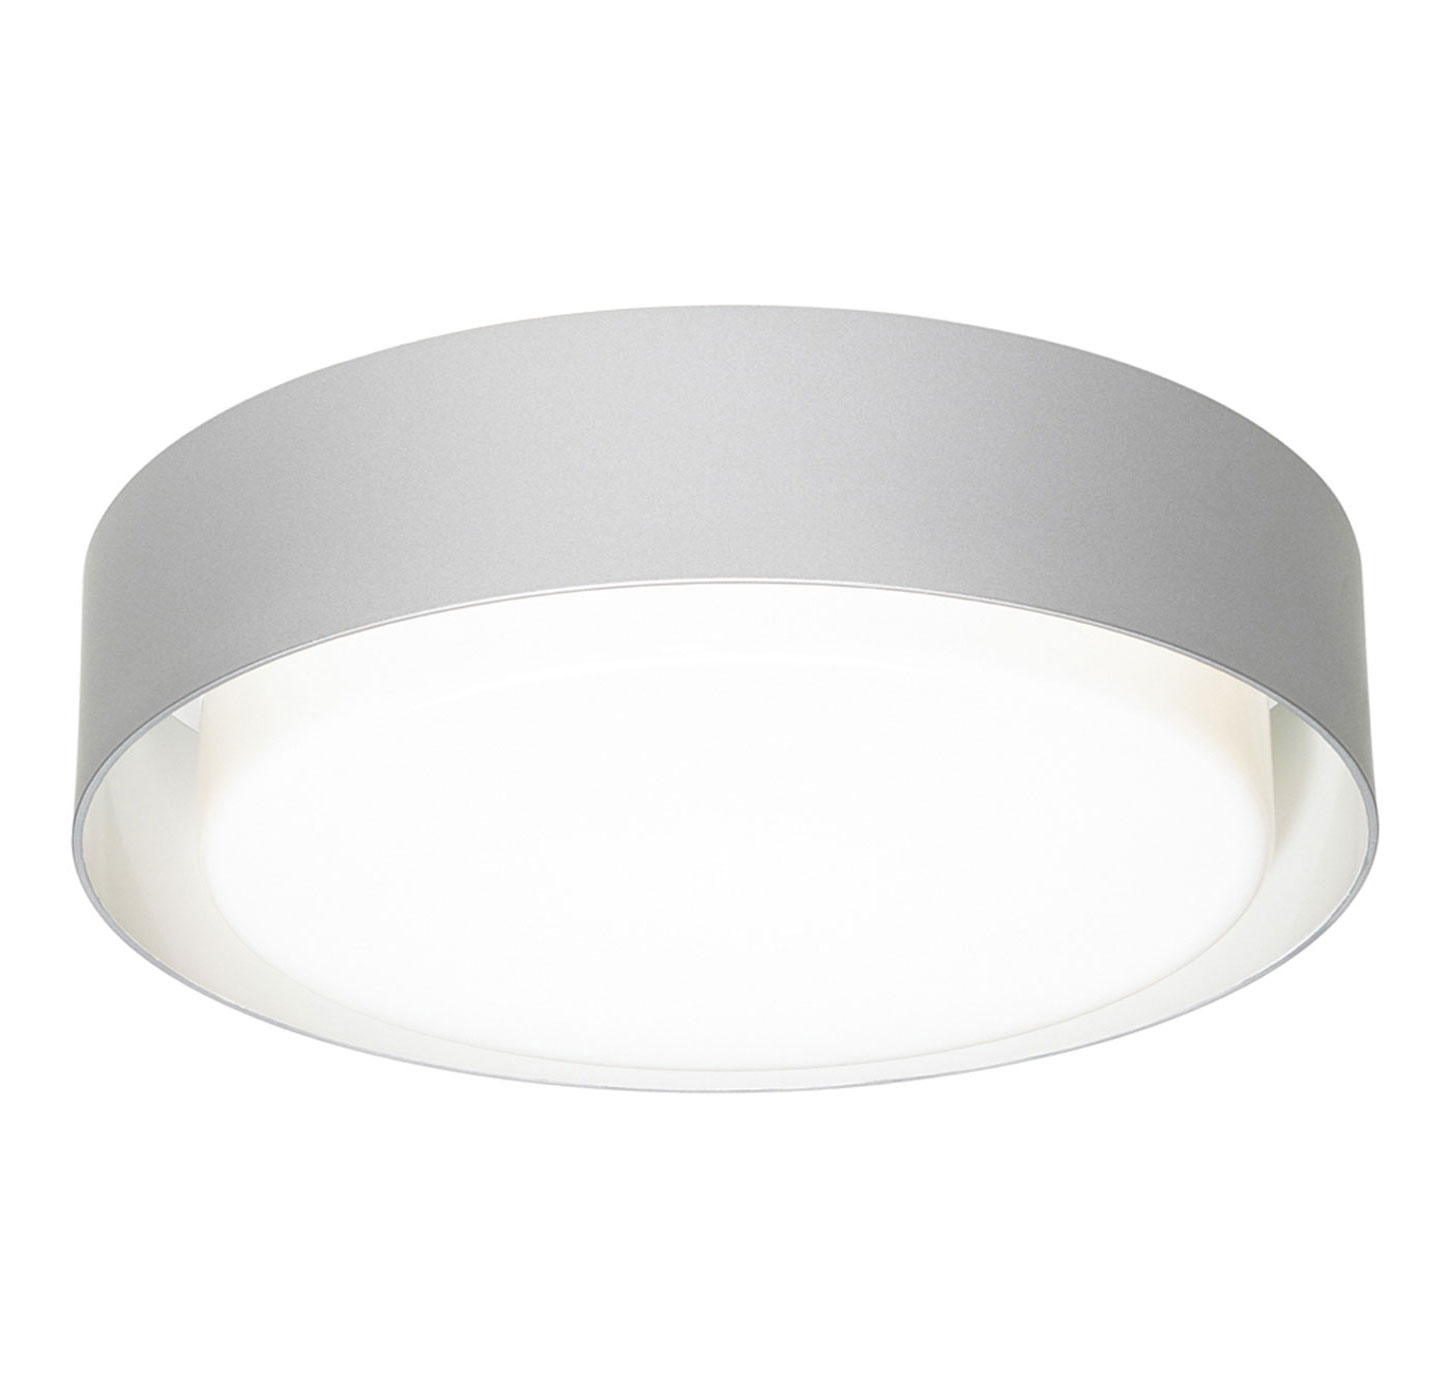 PLAFF-ON! 50 GREY LED 28.1W DALI